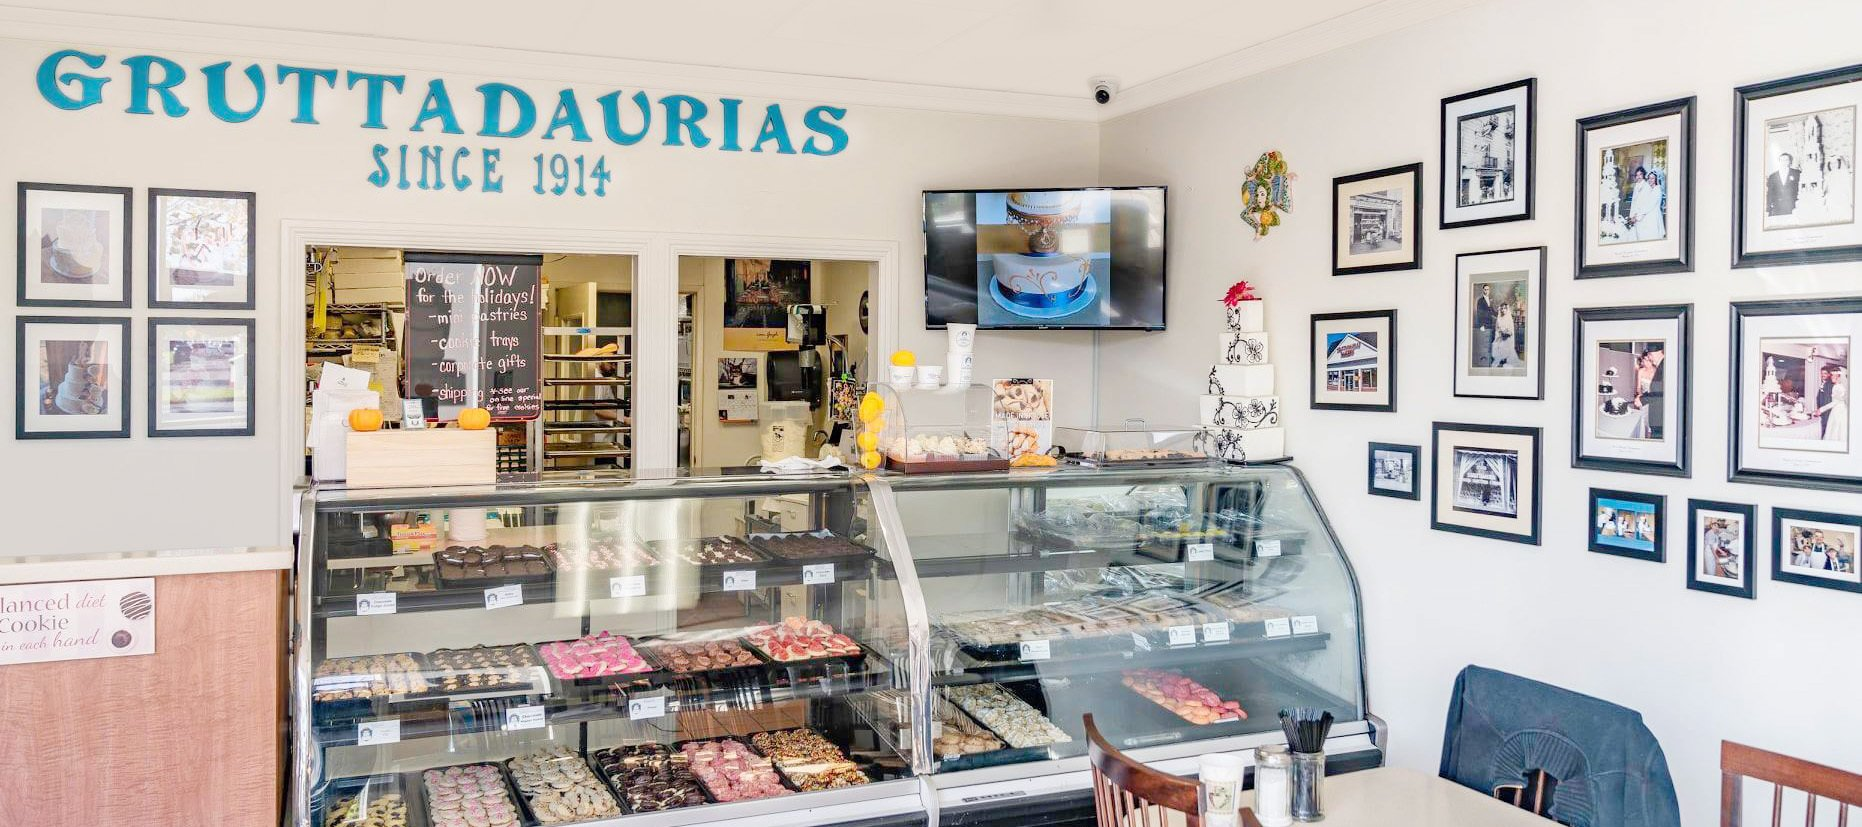 Gruttadaurias Wedding Cake Shop and Bakery